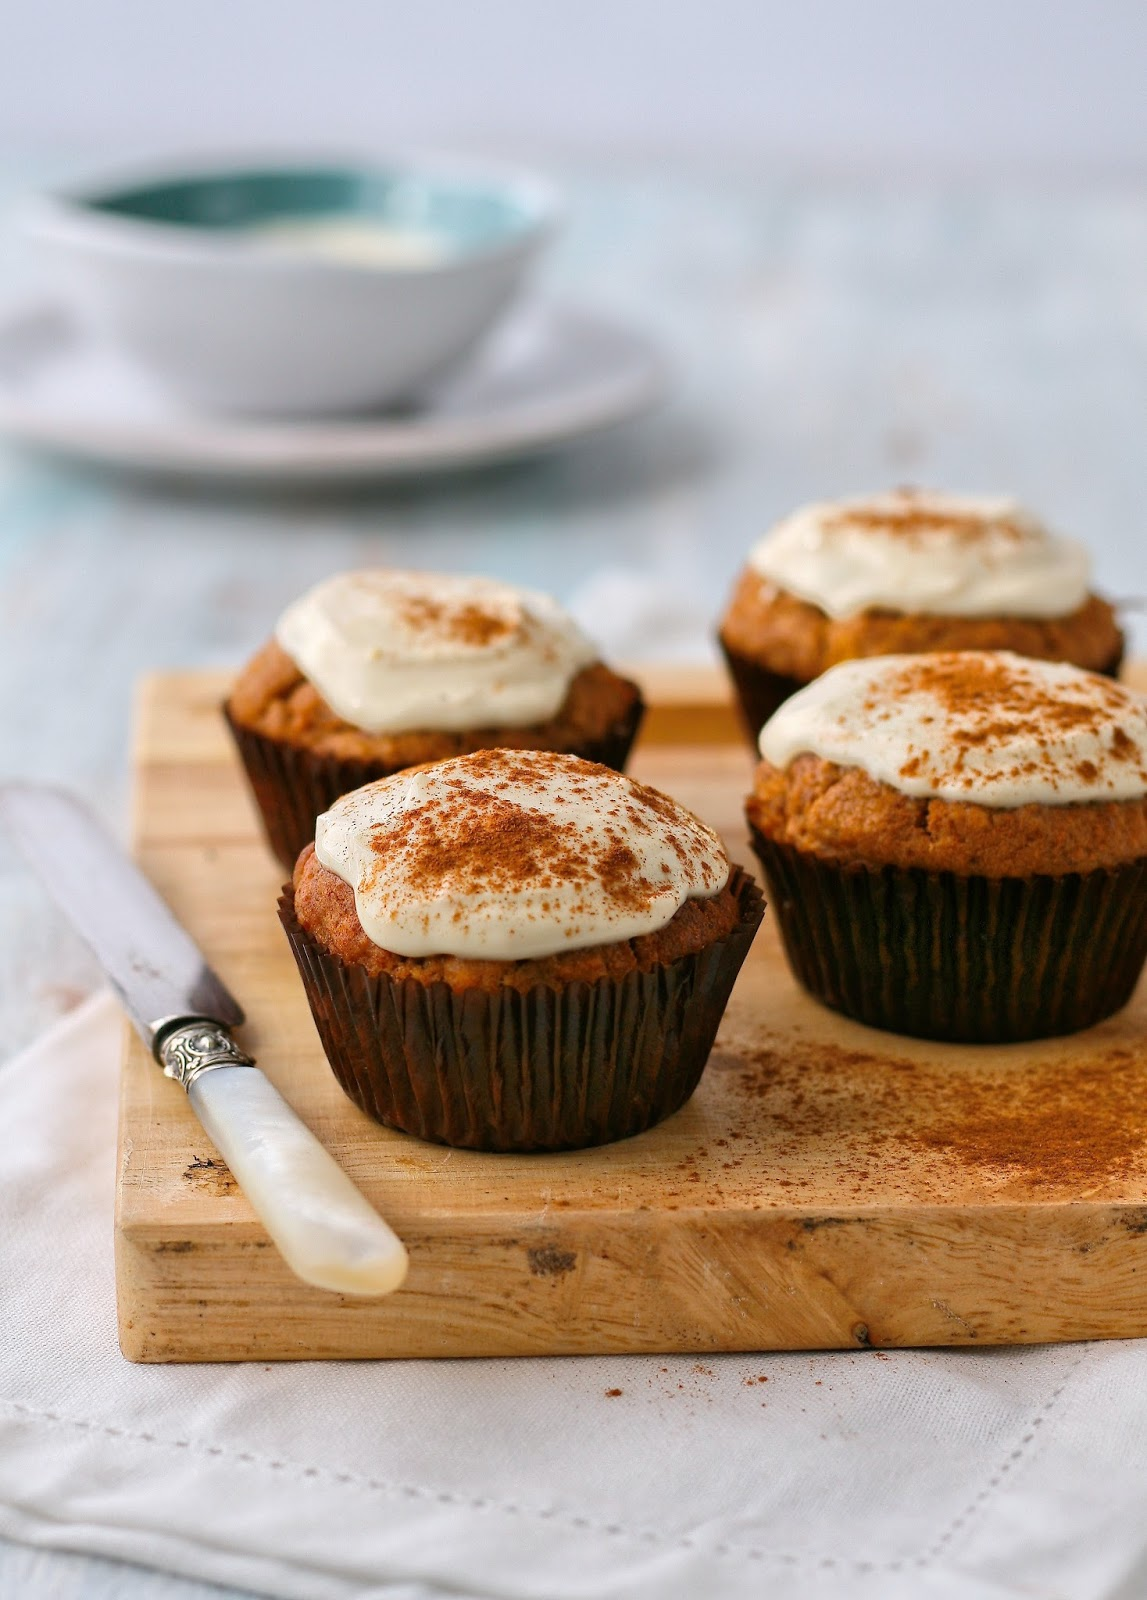 Date, carrot and apple muffins.